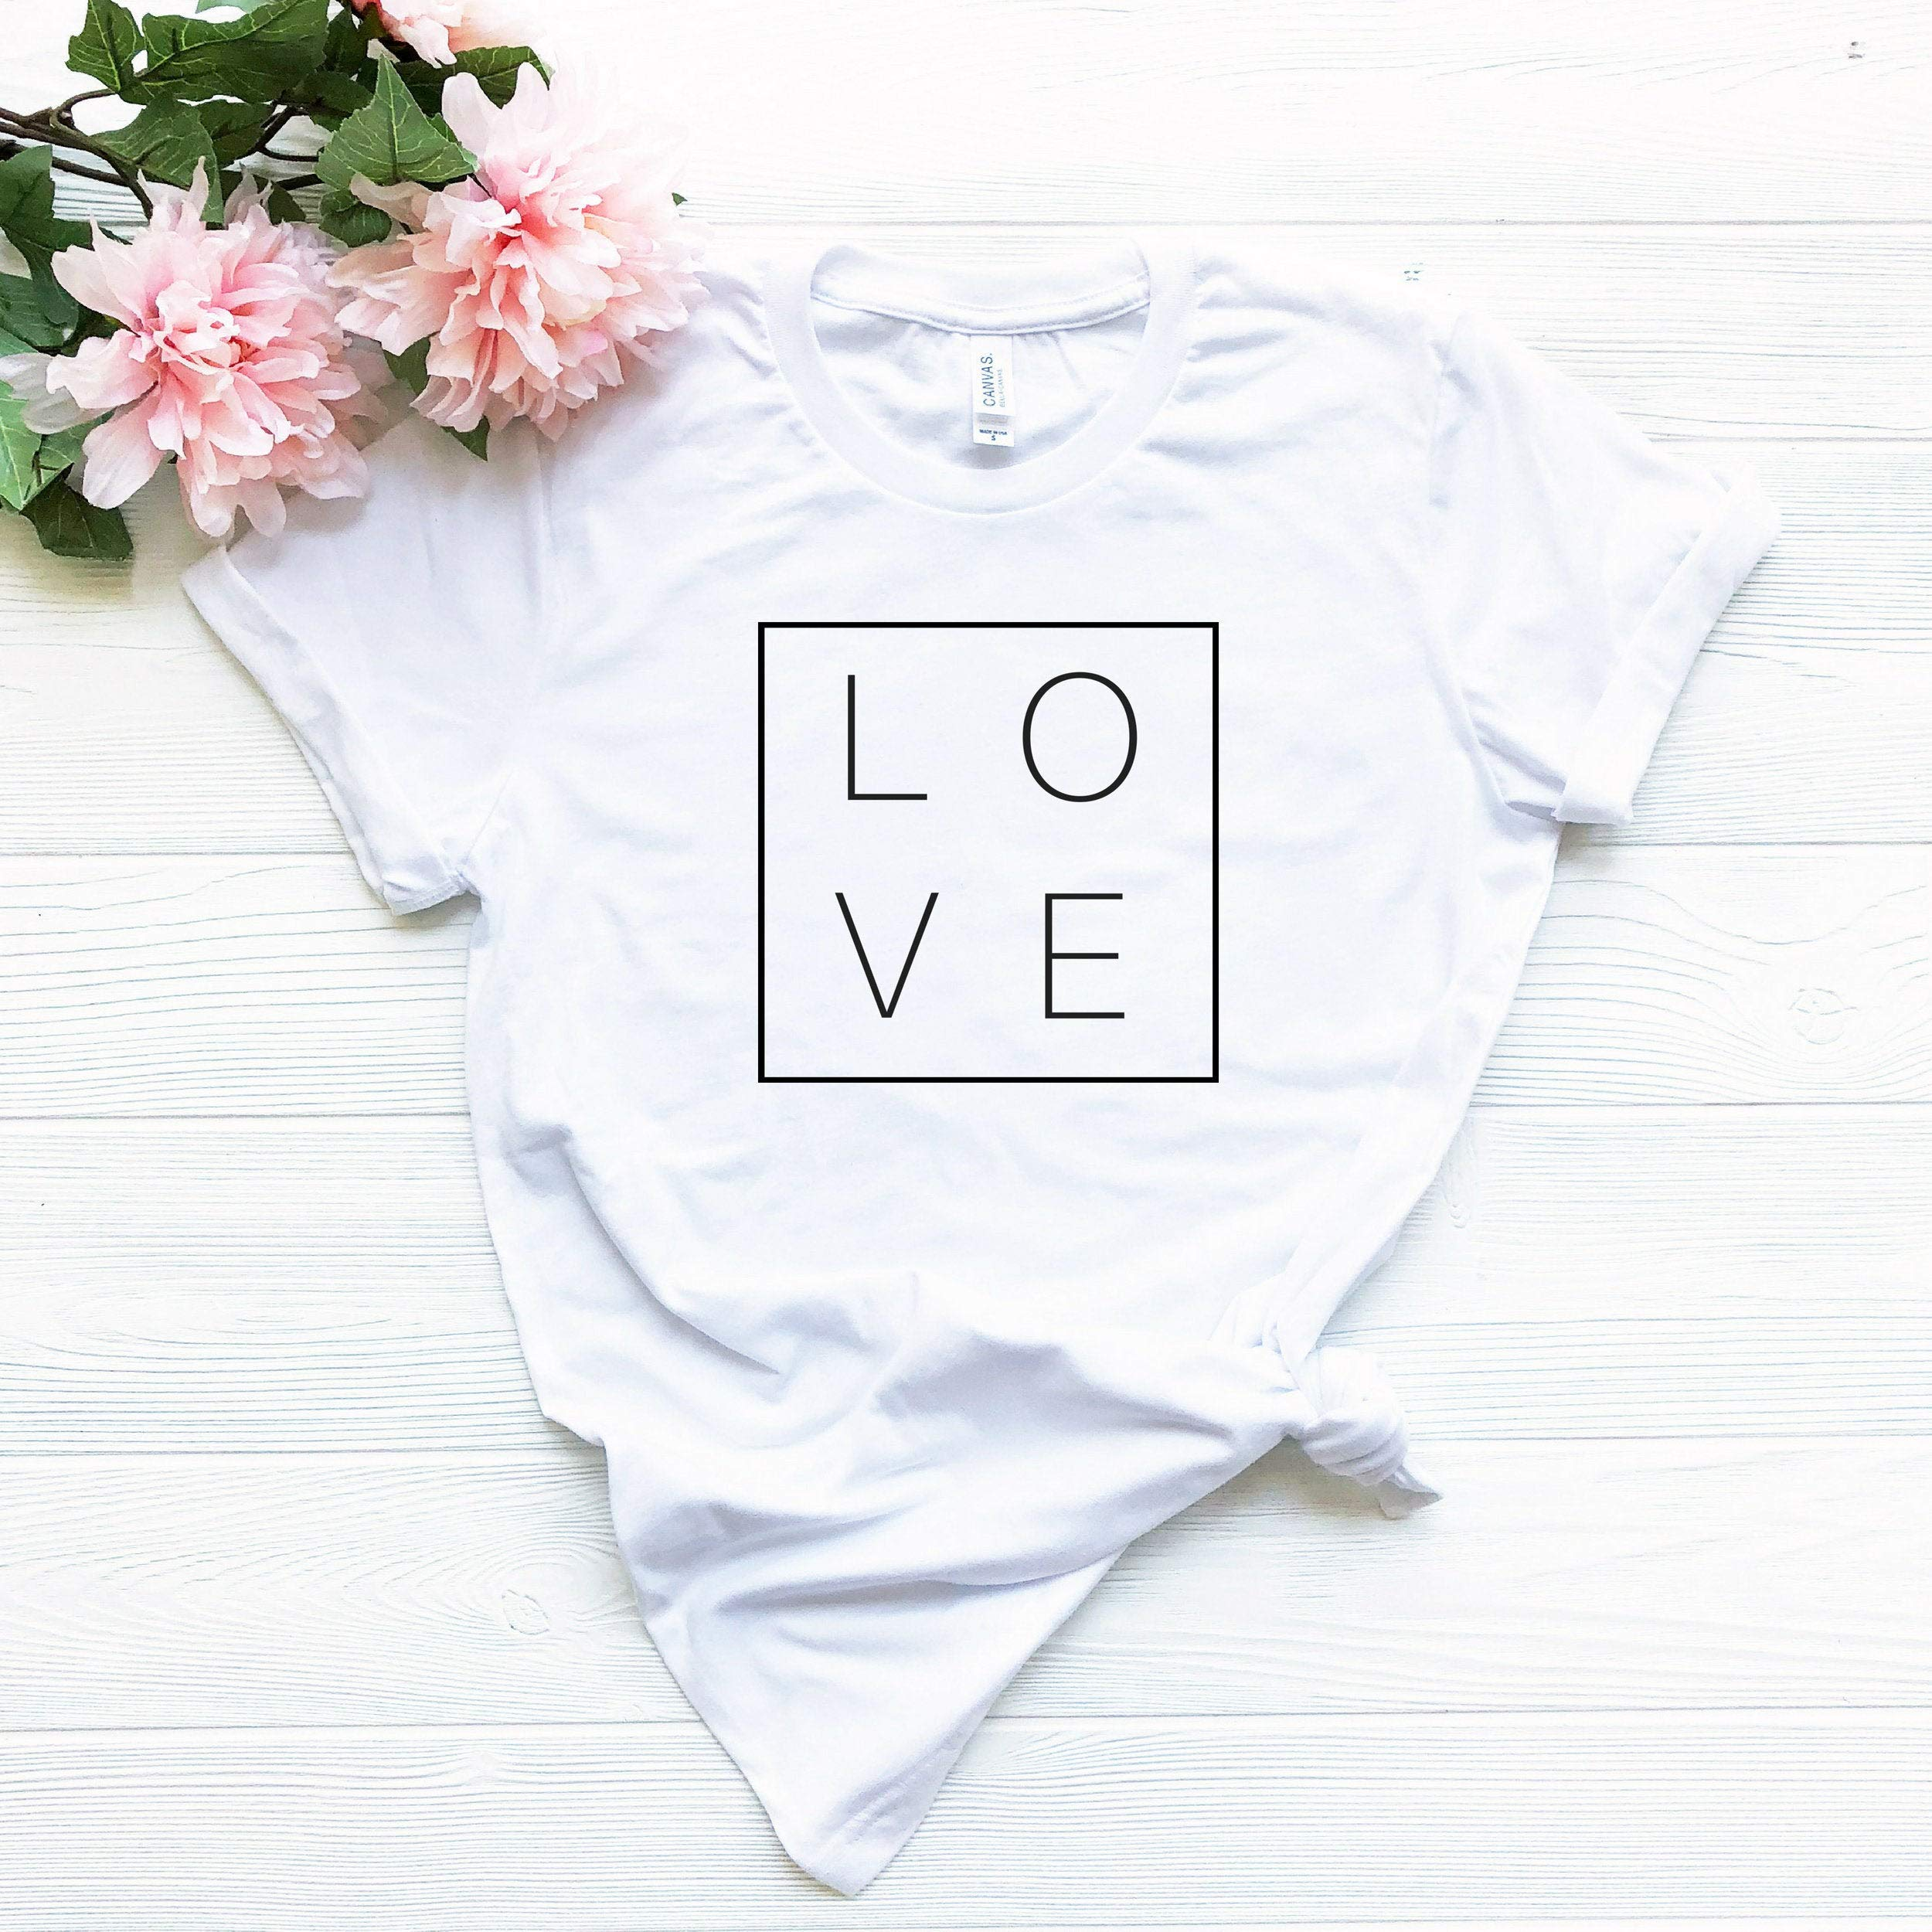 Love Square T-shirt, Women's Graphic Tees, Love T-shirt for Her, Square T-shirt, Gift for Her, Tumblr Shirt, Aesthetic Clothing, Trendy Tees by